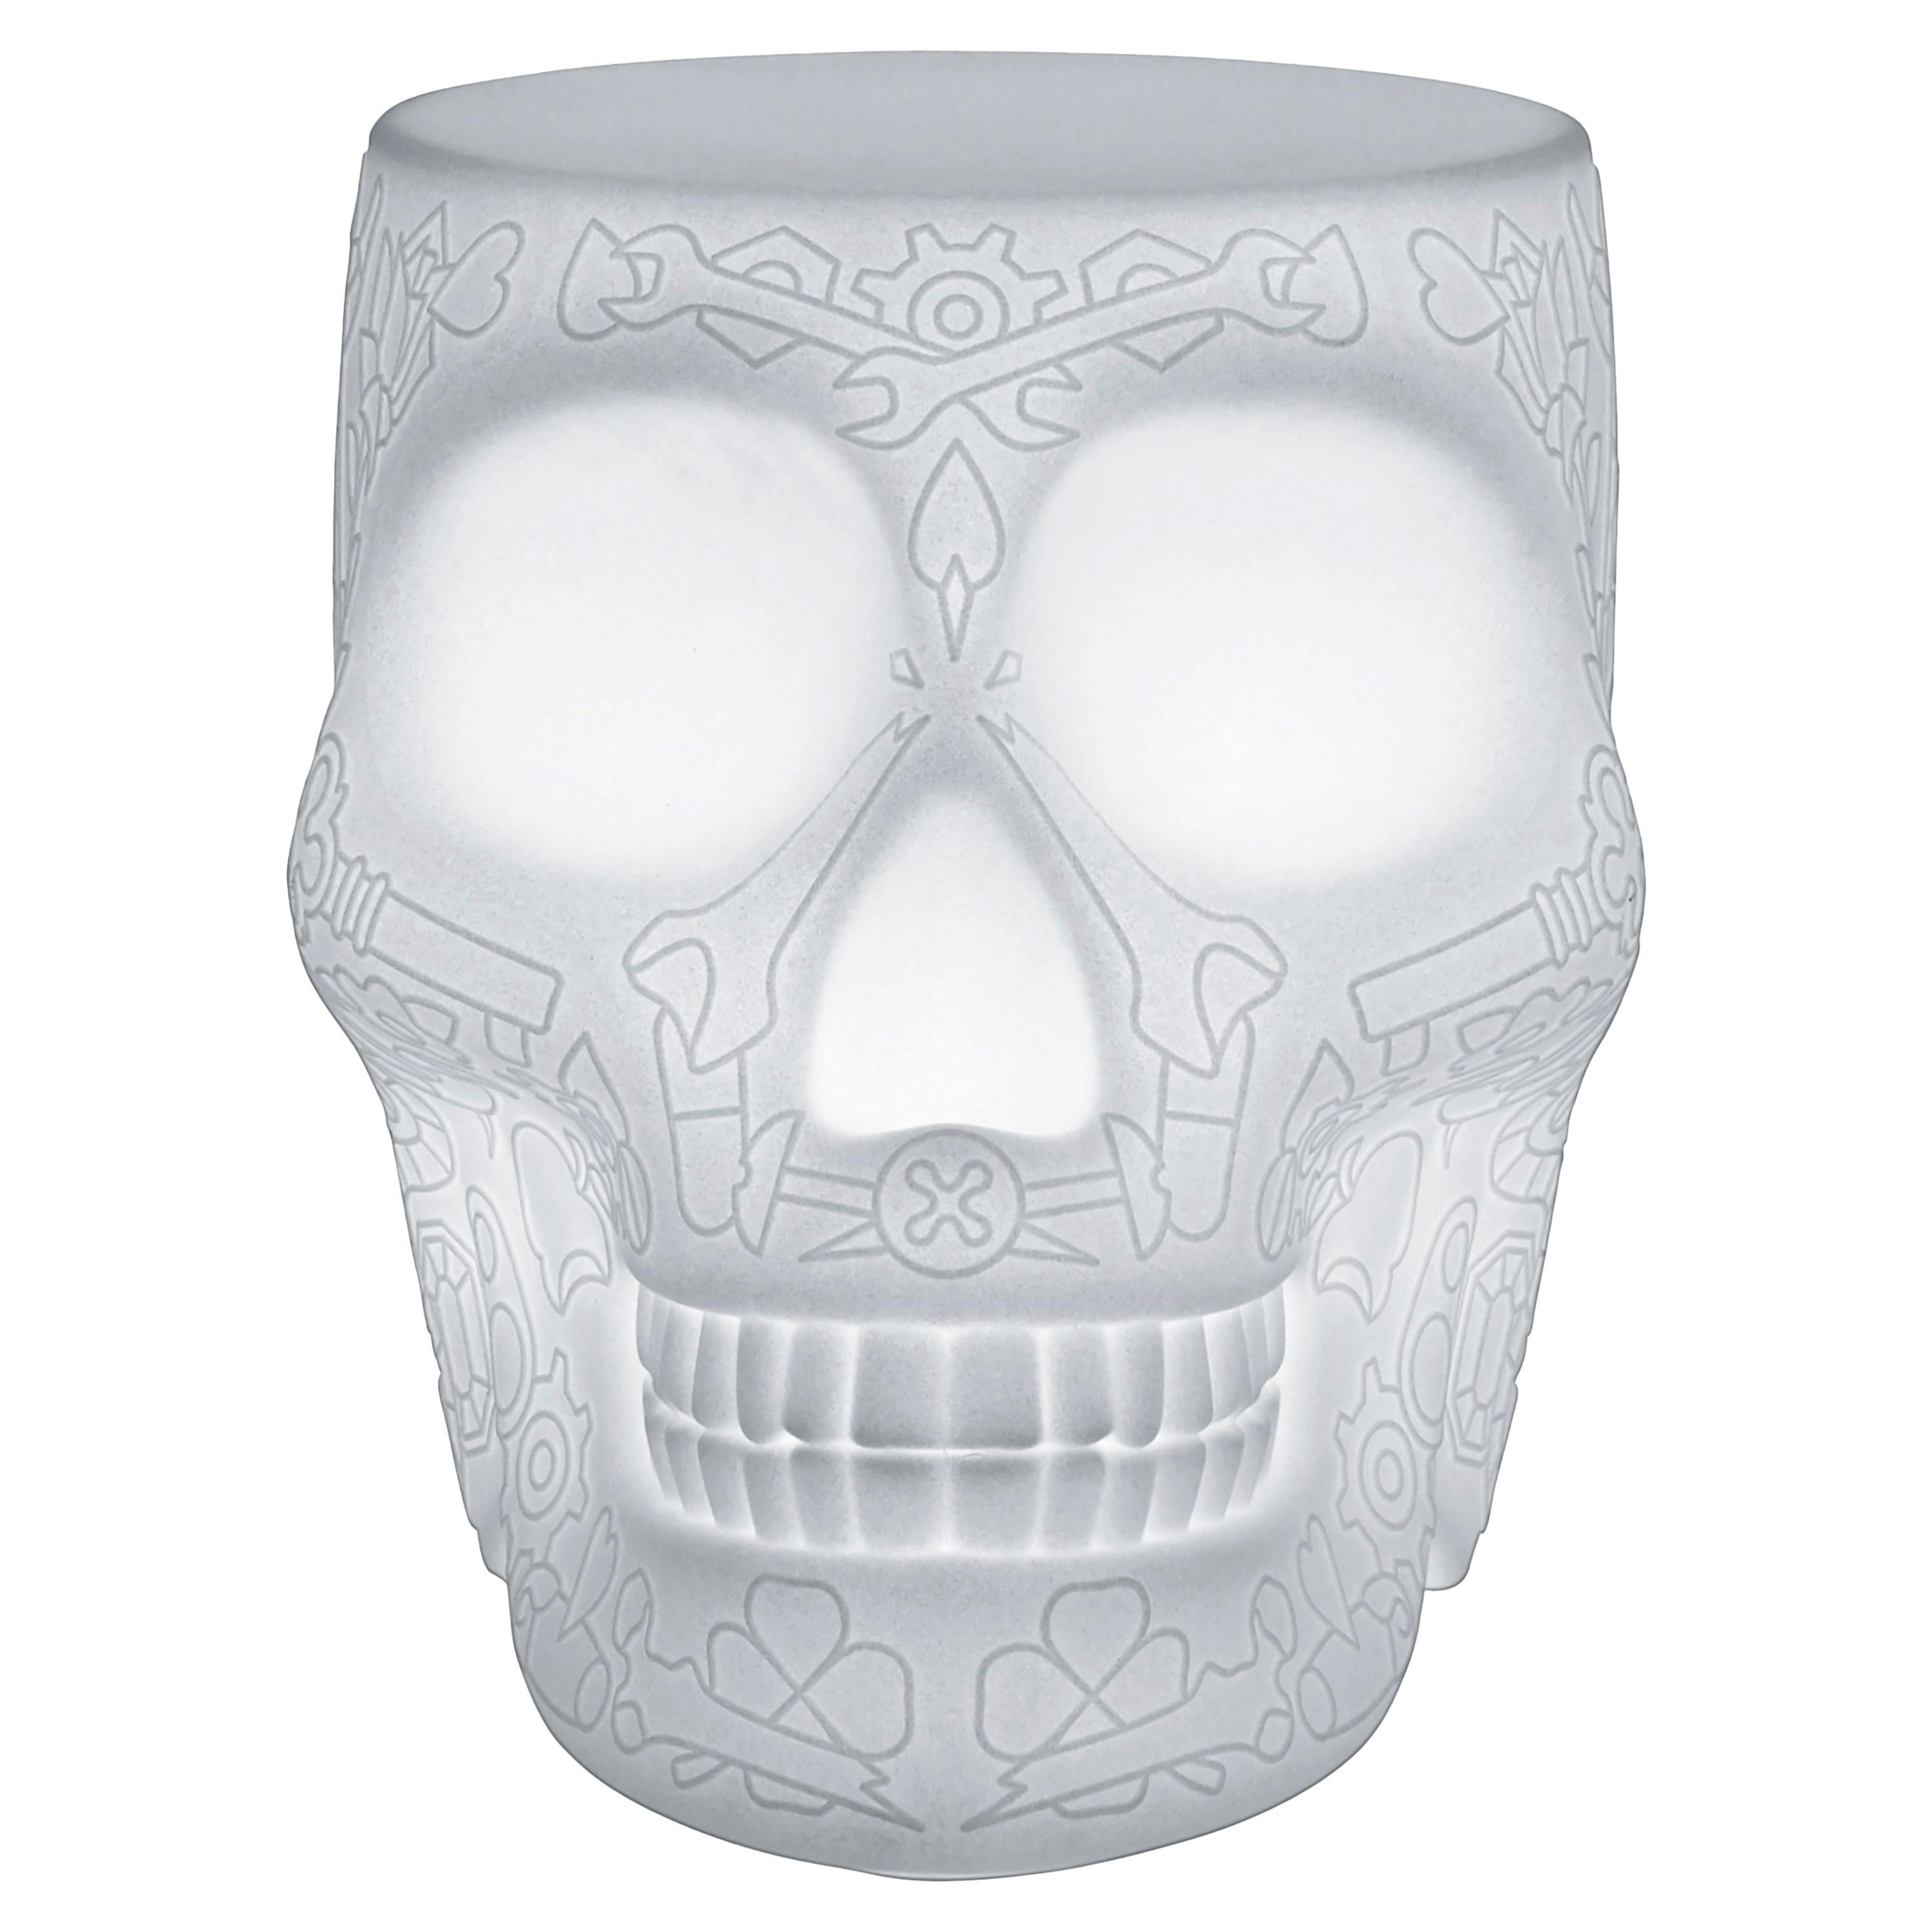 Modern Mexican Calavera Skull Stool or Side Table Lamp By Studio Job